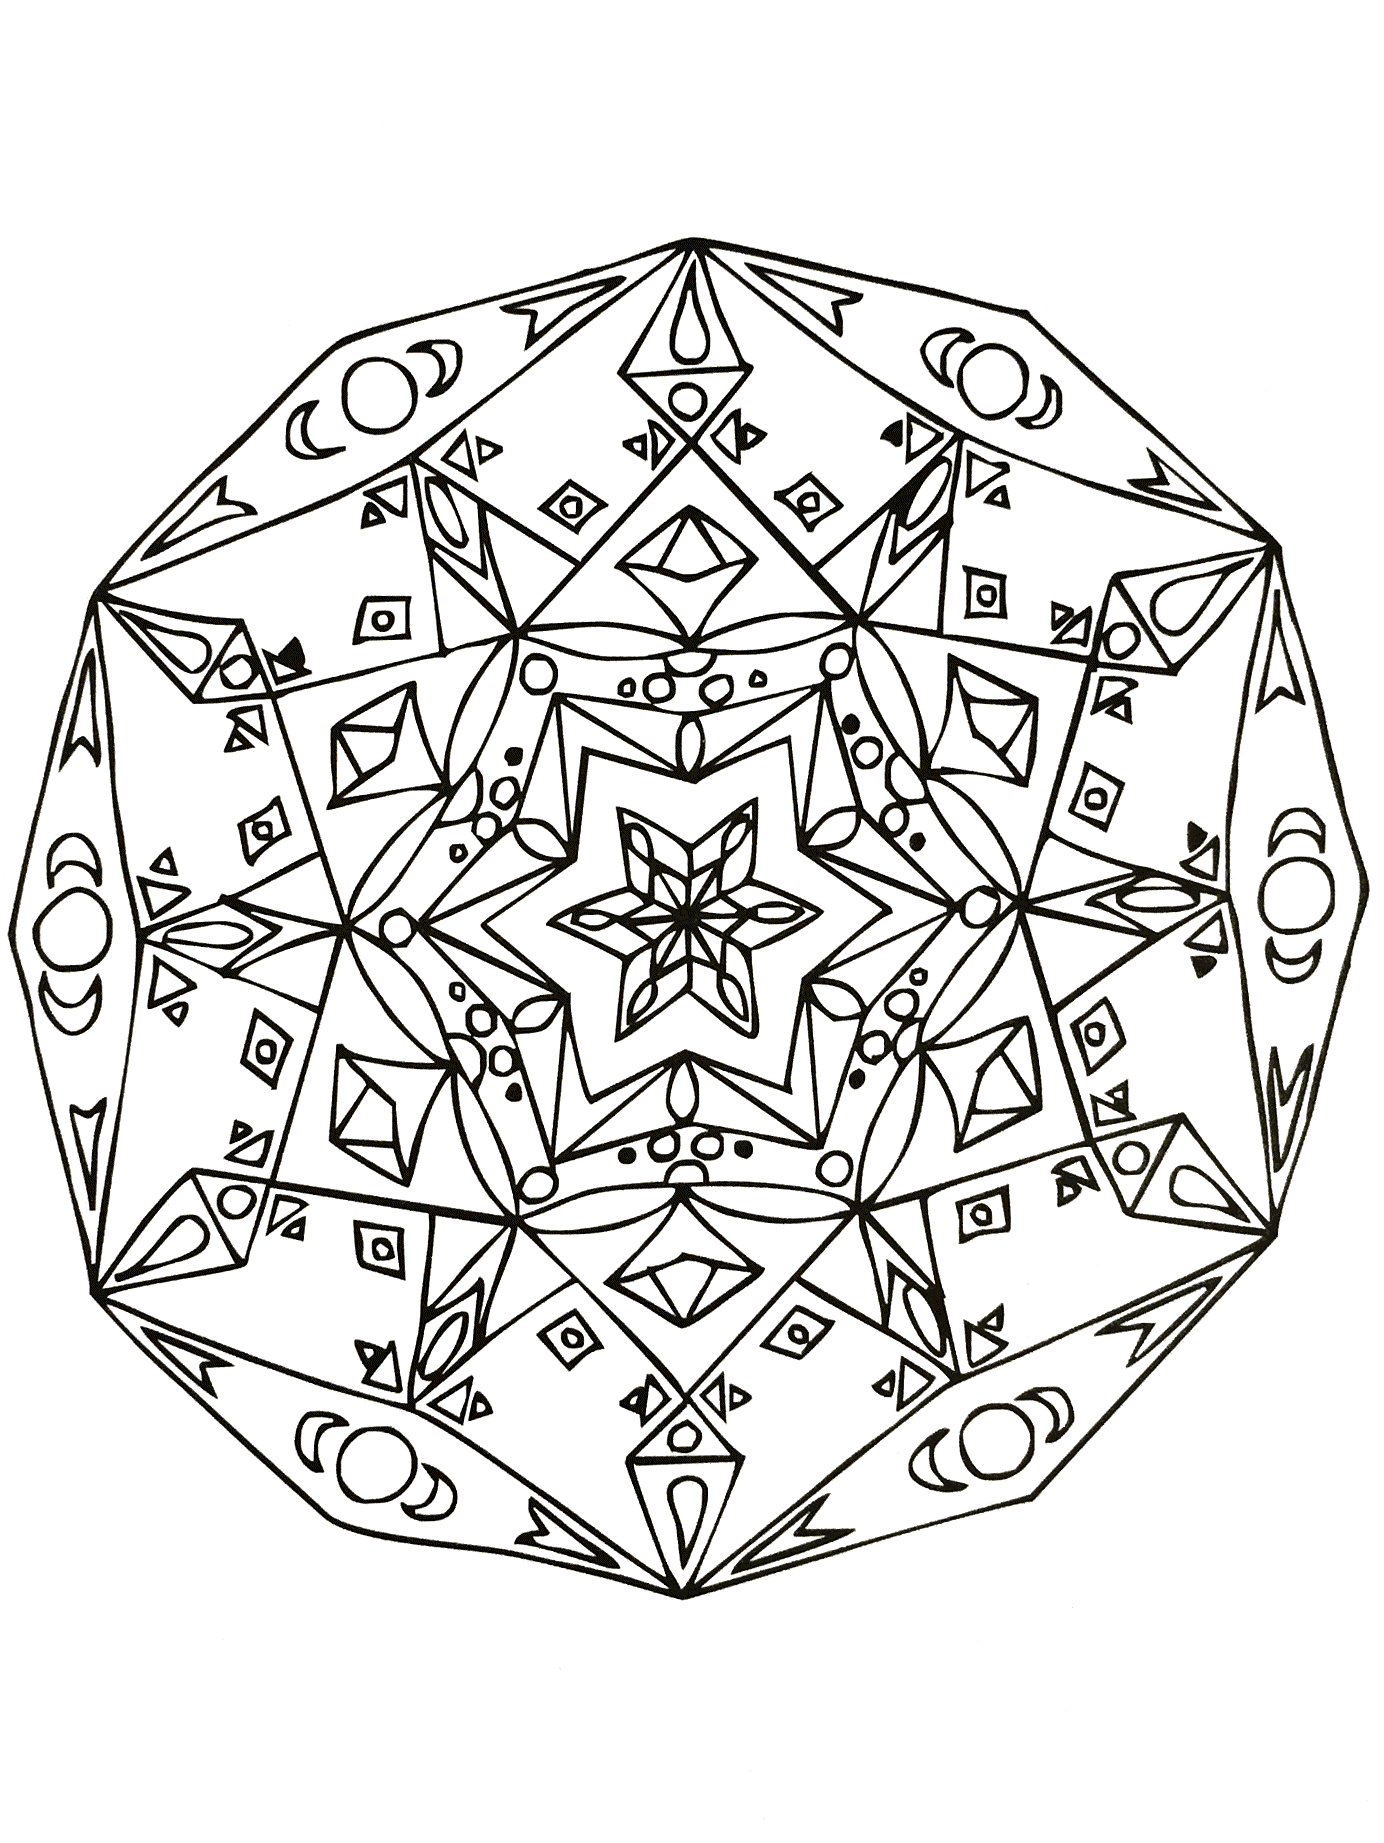 A Mandala with stars, quite difficult to color, perfect if you like to color small areas, and if you like various details.